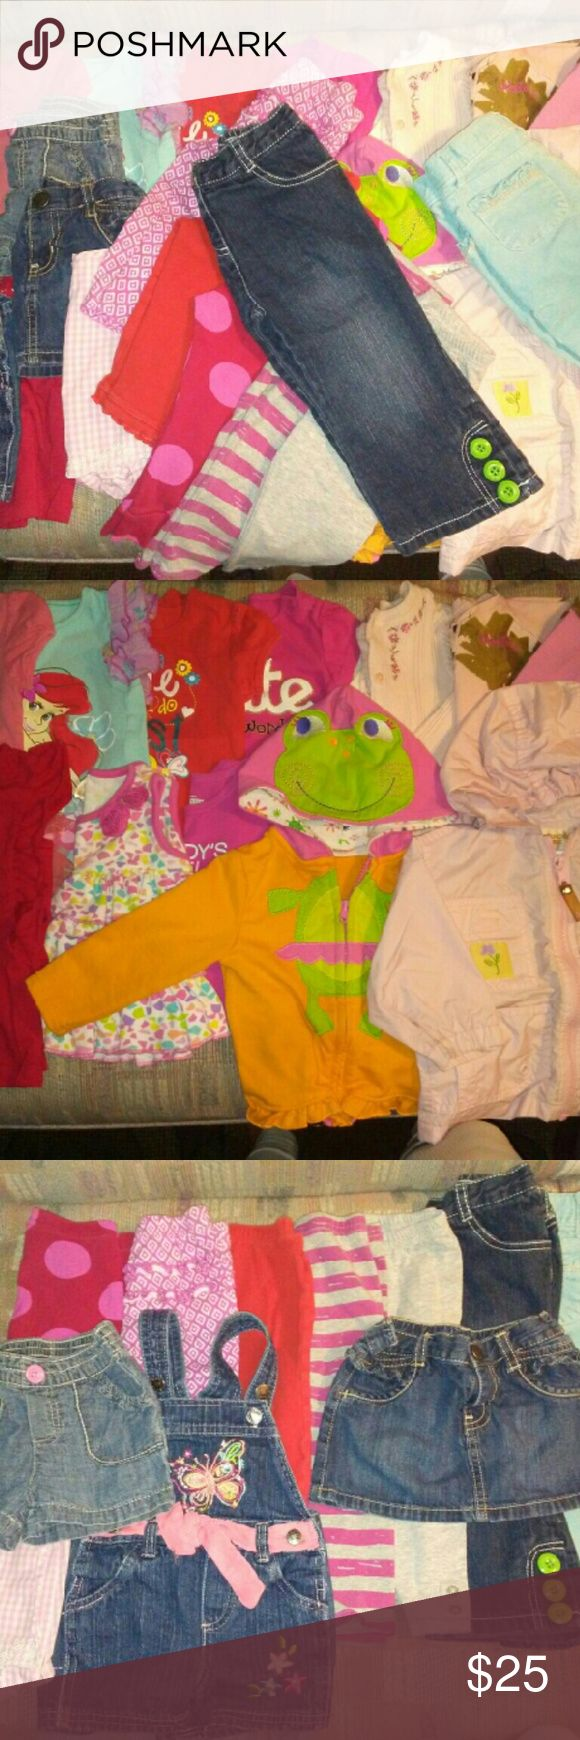 Huge lot of girls clothing size 12-18 months 23 pieces of clothing- 2 zipper front hoodies 2 skirts 1 shorts 1 overall jean shorts 2 long sleeve tops 1 long sleeve sweater 1 pair of jeans 1 pair of cords(small spot on leg) 7 tops(2 are tank top type tops) 5 leggings Lots of Carters, First Impressions, Cabelas, Gymboree, Buster Brown, Old Navy. Good used condition- make offer! Jackets & Coats